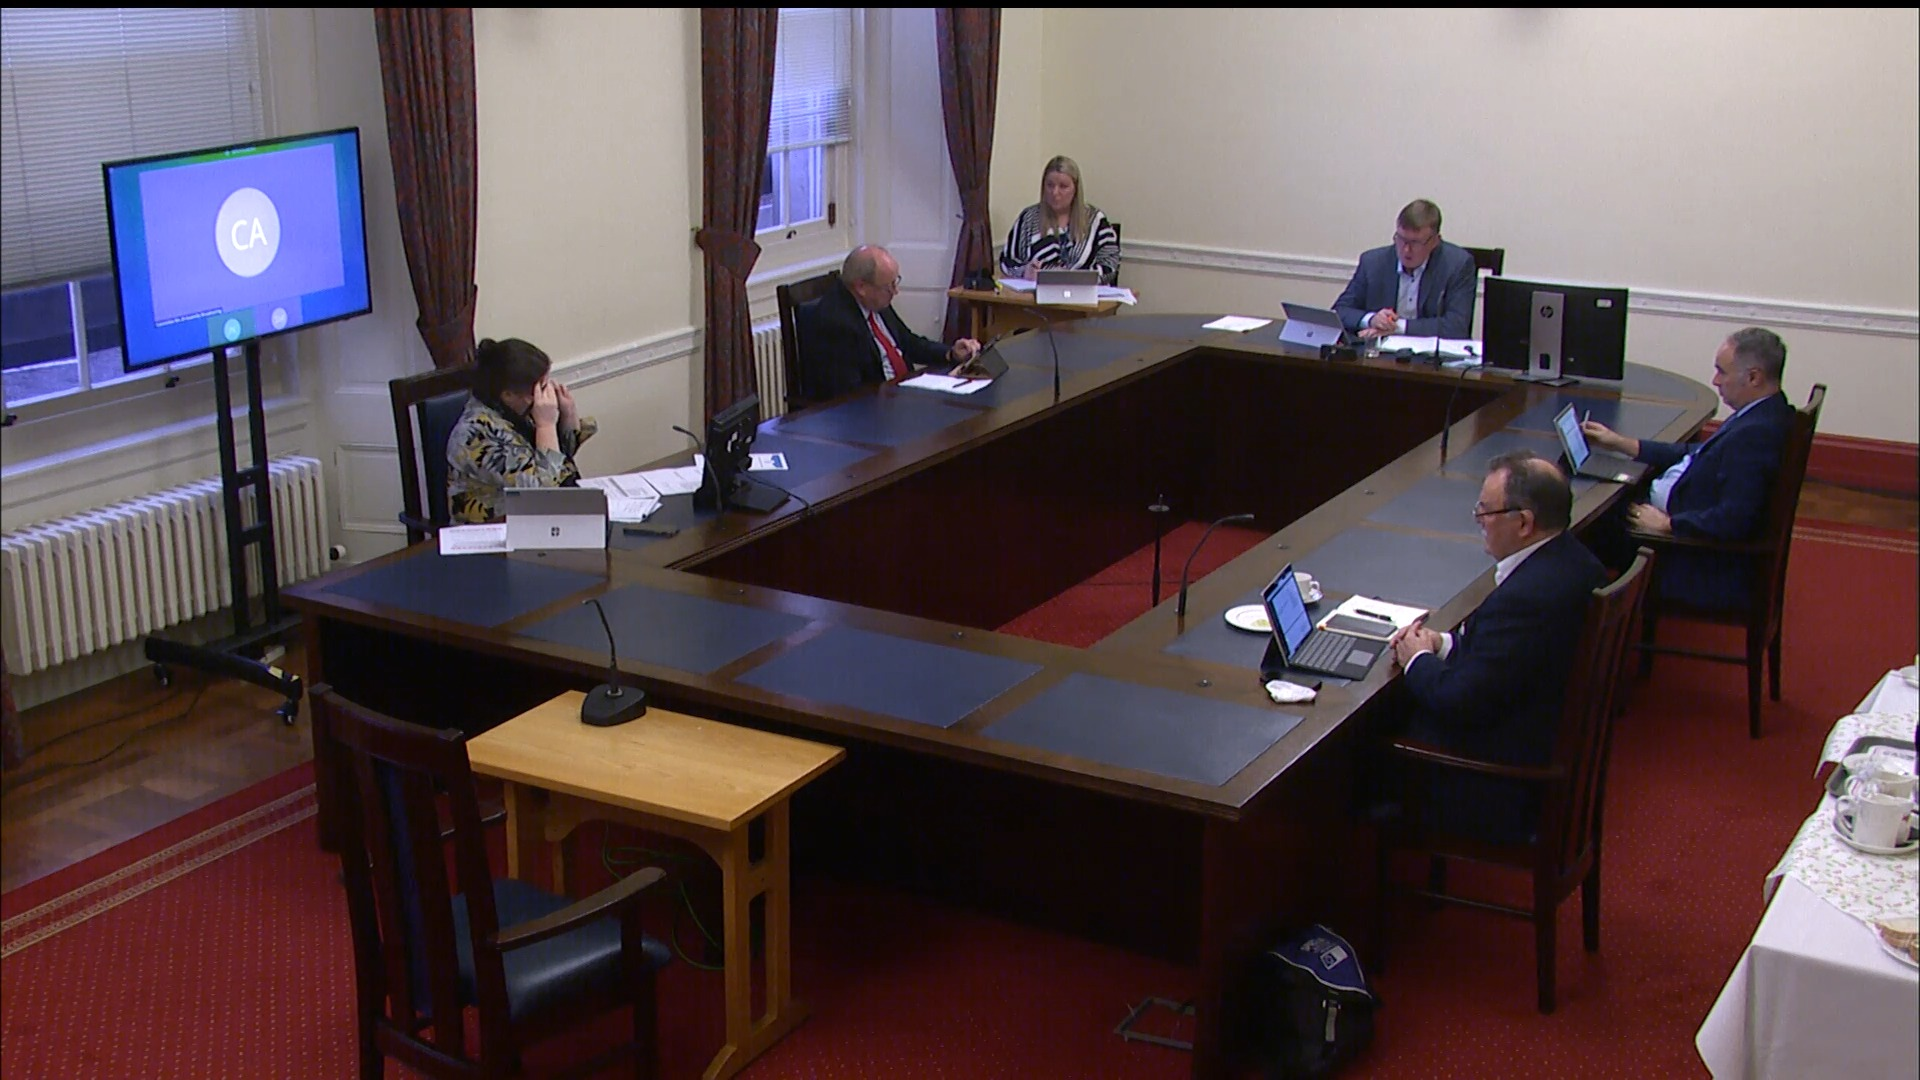 Assembly and Executive Review Committee - Wednesday 16th December 2020